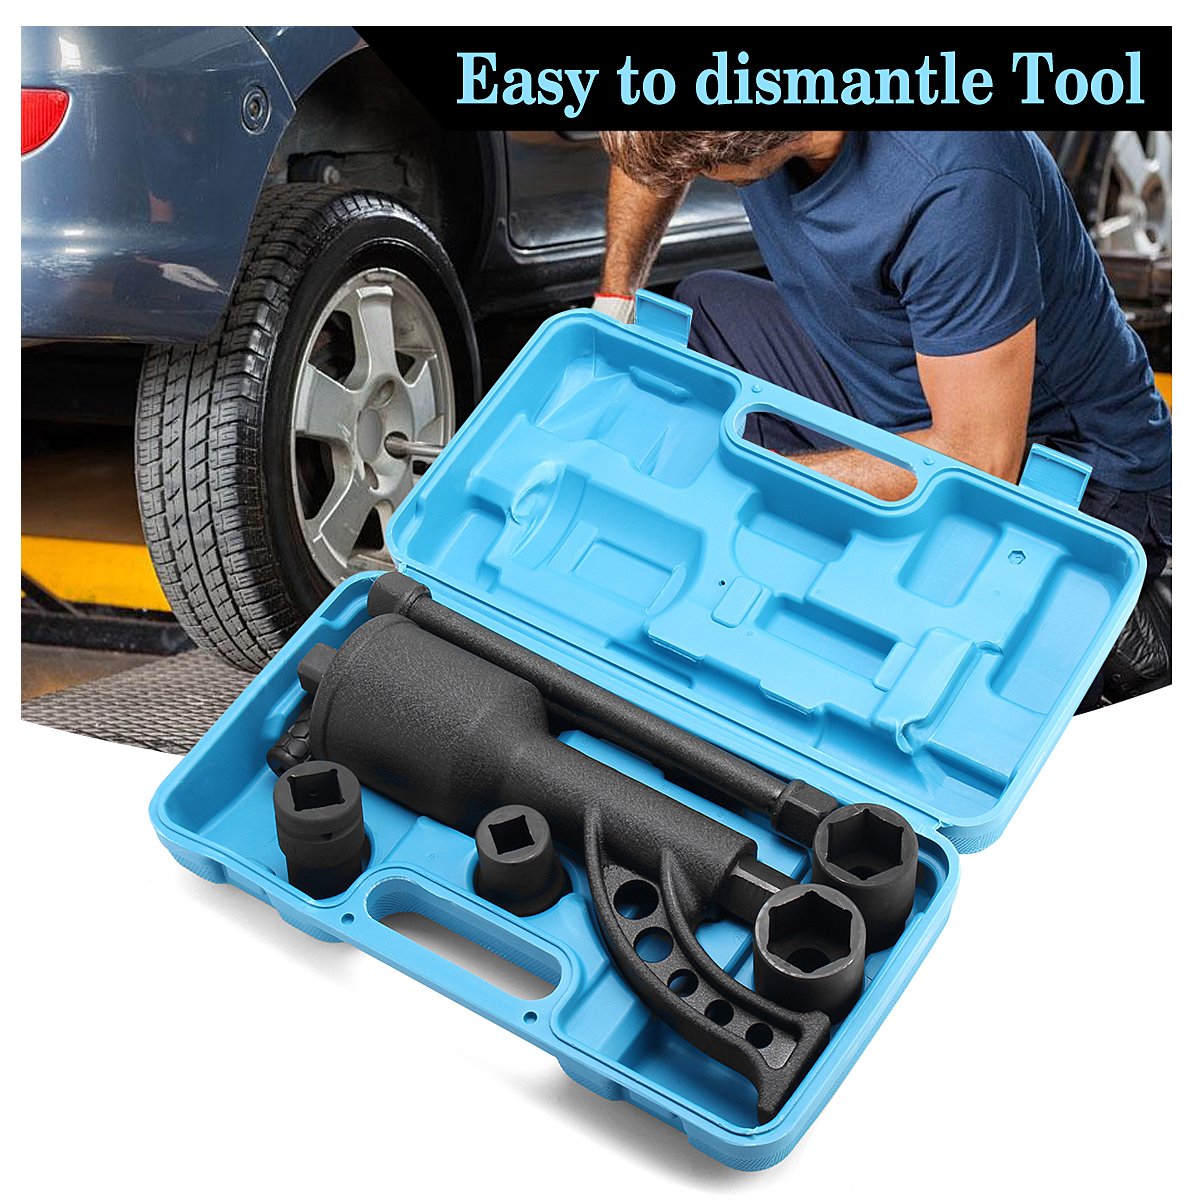 7 PCS Heavy Torque Multiplier Wrench Lug Nut Lugnuts Remover Labor Saving Socket Car Wash Maintenance Engine Care